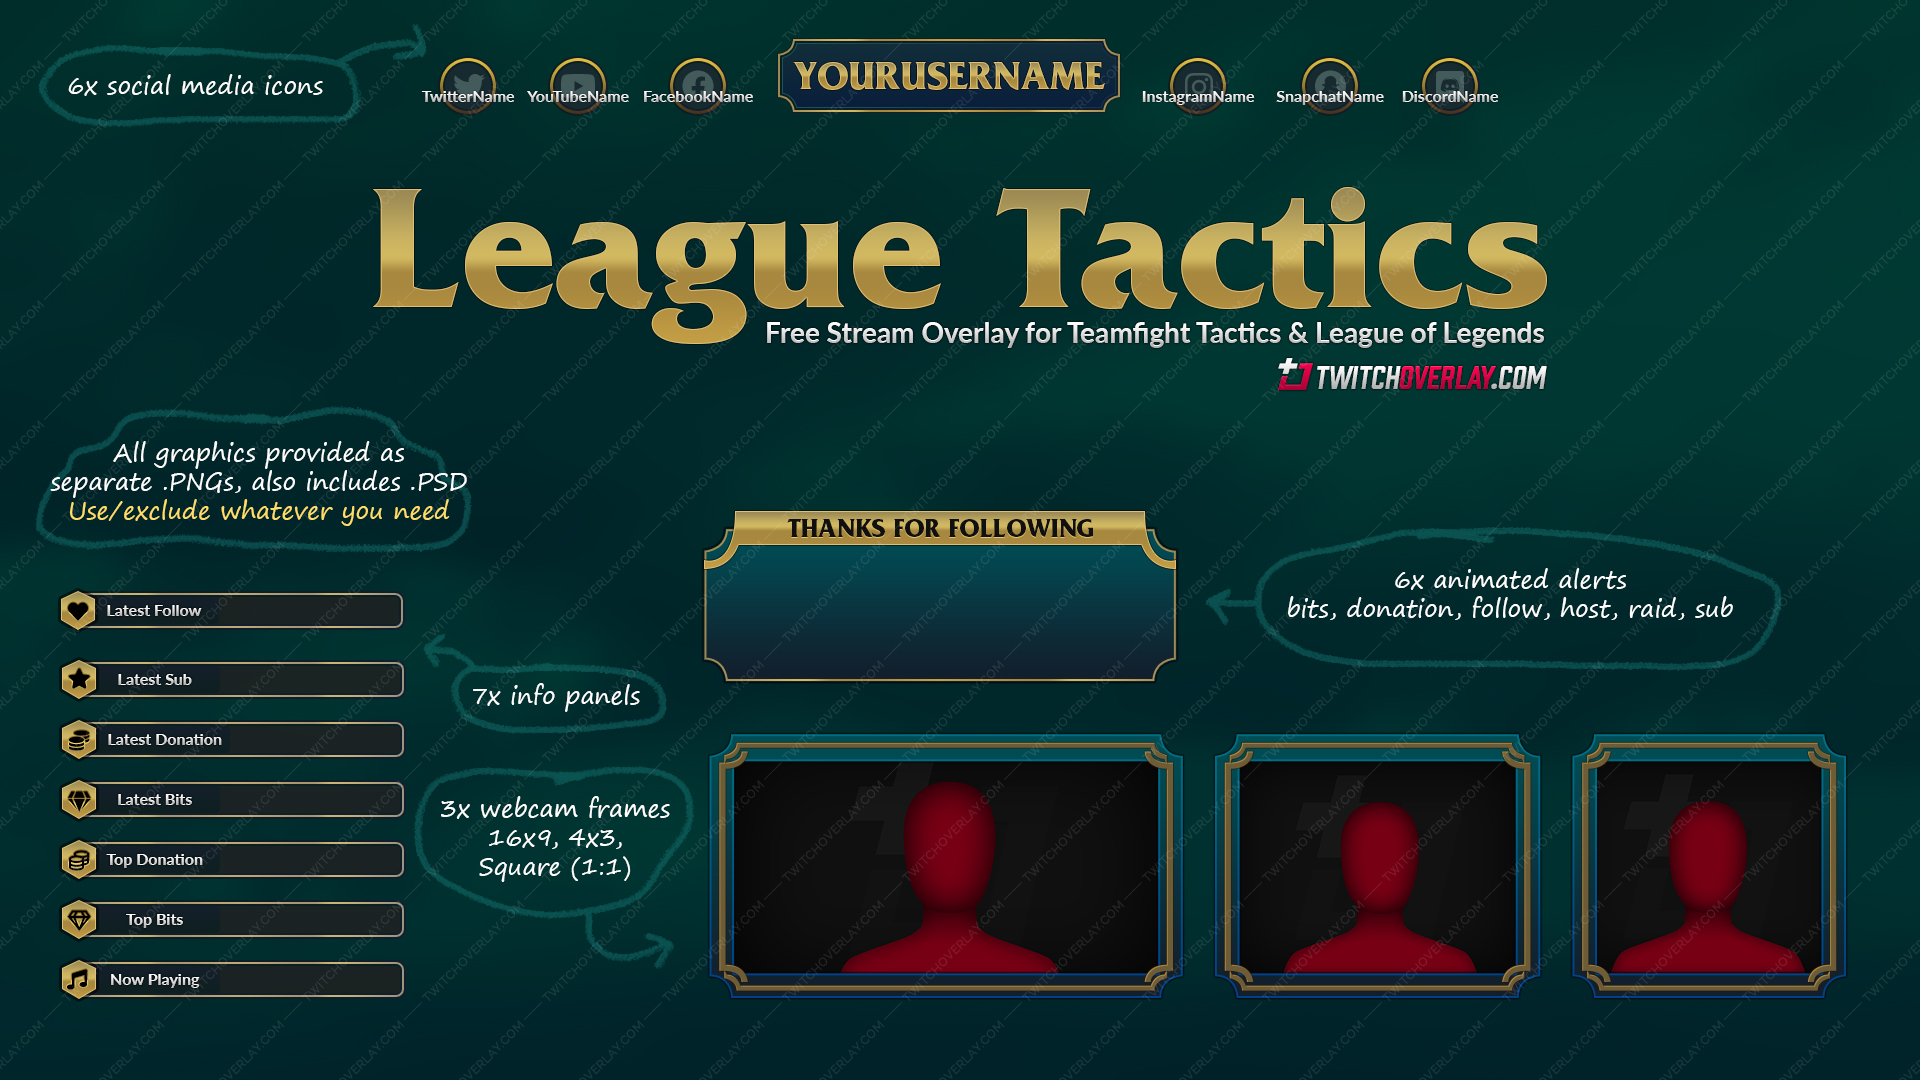 league of legends twitch overlay - Twitch Overlay